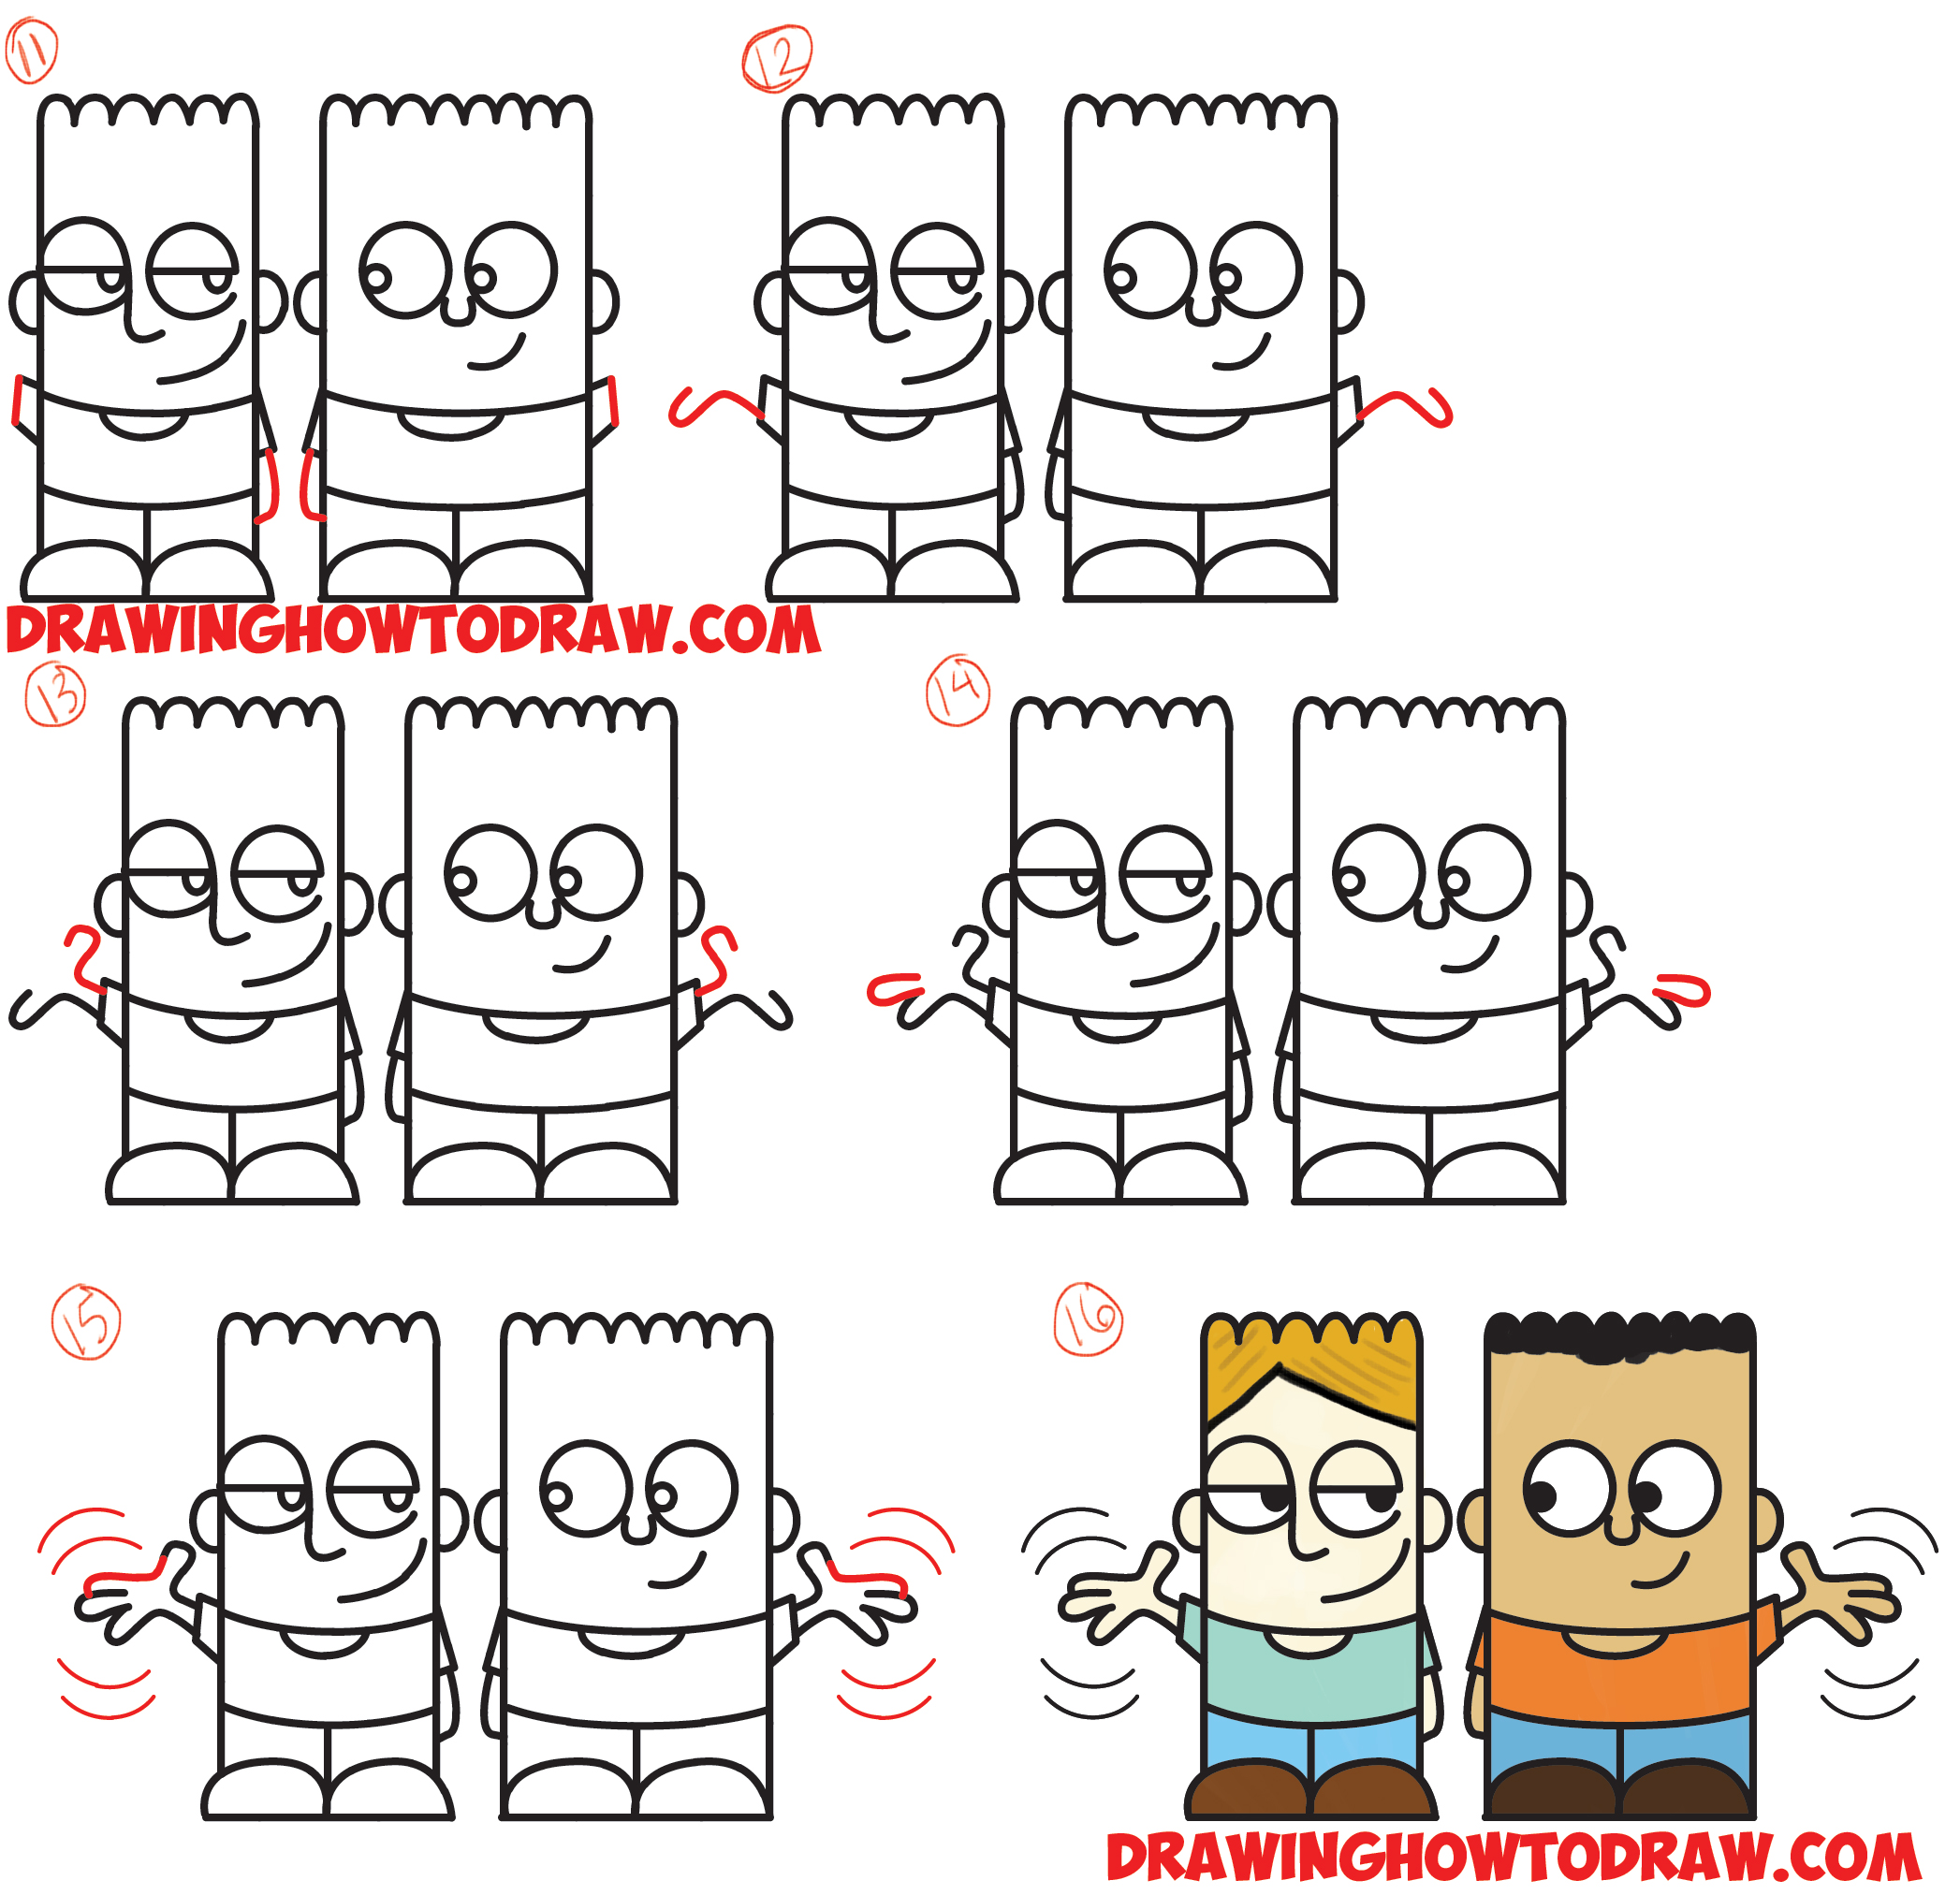 How To Draw 2 Cartoon Characters From The Word Hello Easy Step